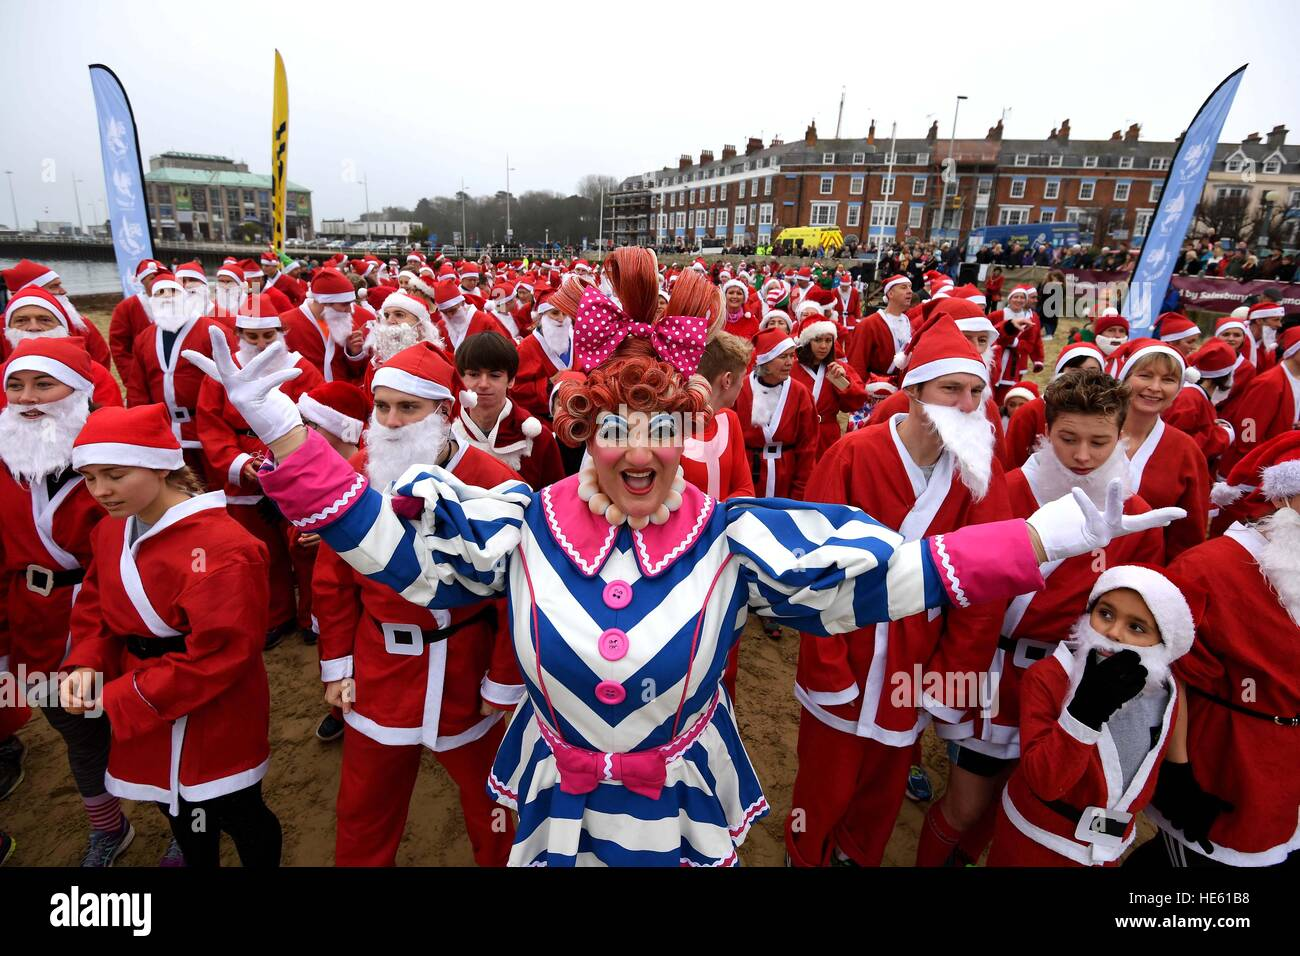 Weymouth Beach in Dorset, UK. 18th Dec, 2016. Chase the Pudding Santa Run on Weymouth Beach in Dorset, UK Credit: Stock Foto